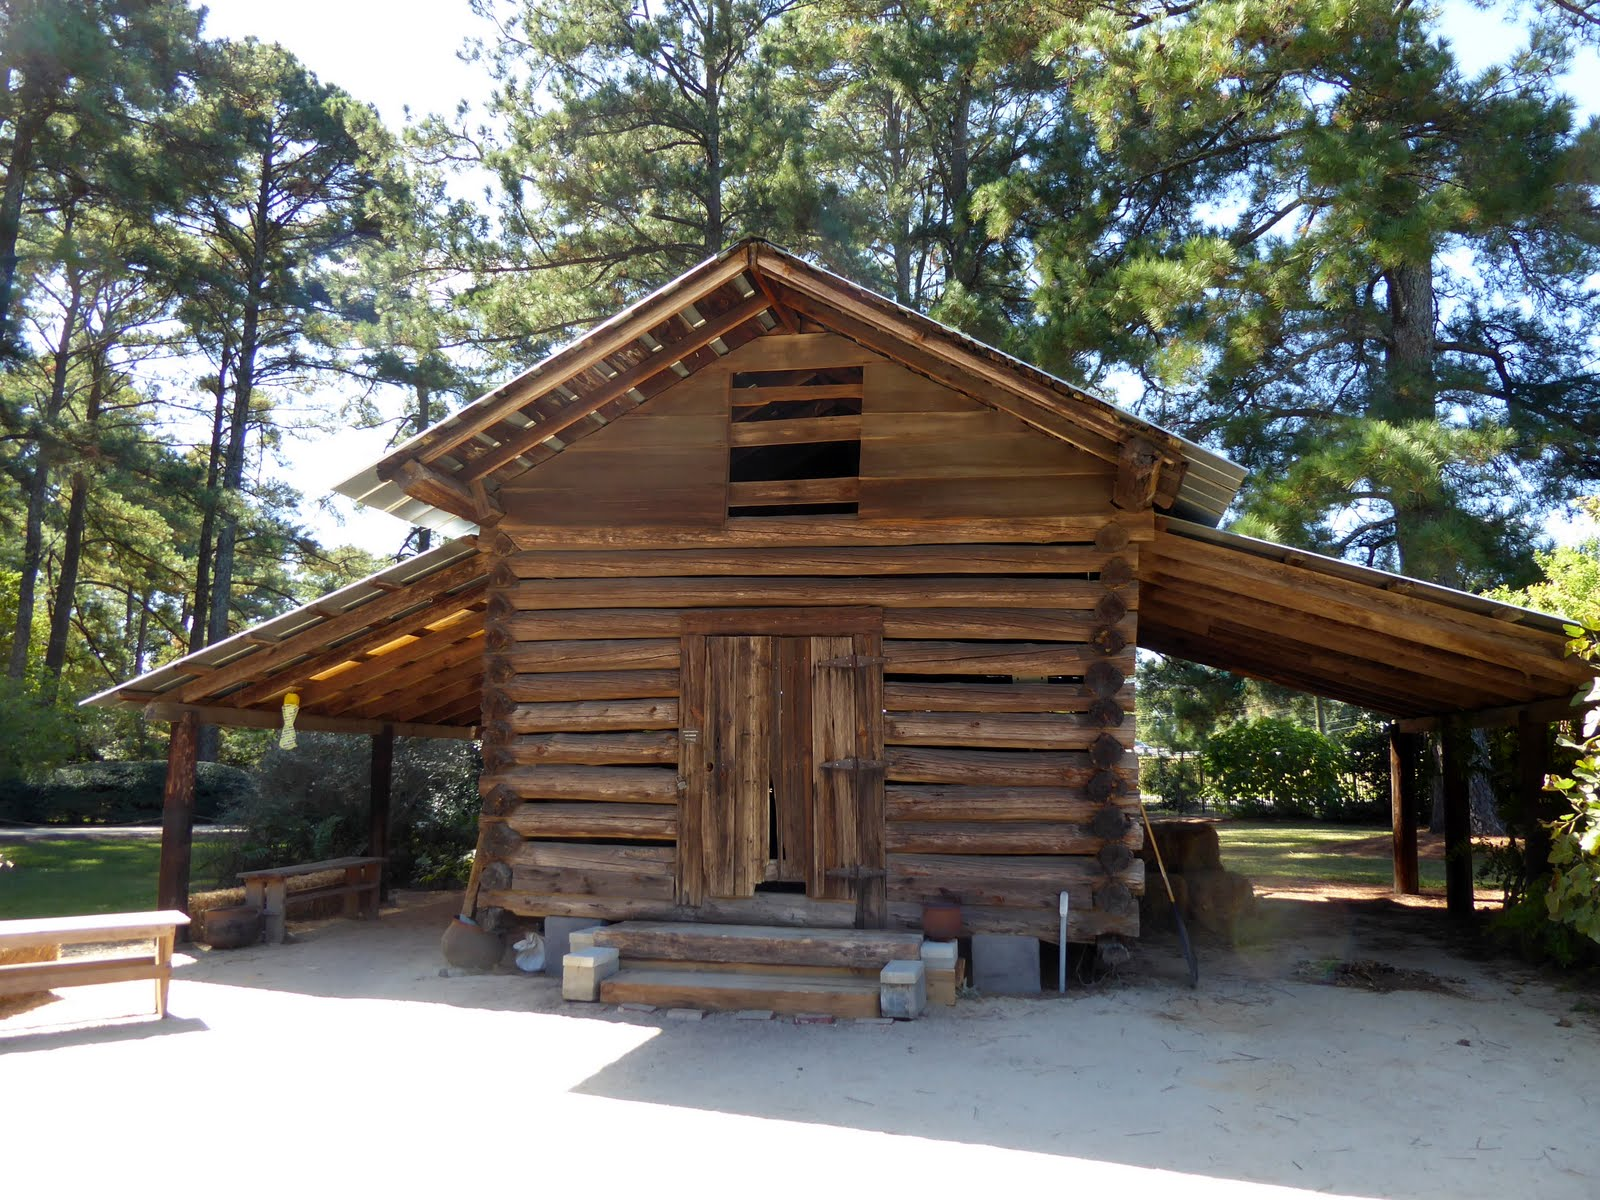 Retired Nomads: Cape Fear River Trail & Cape Fear Botanical Gardens ...